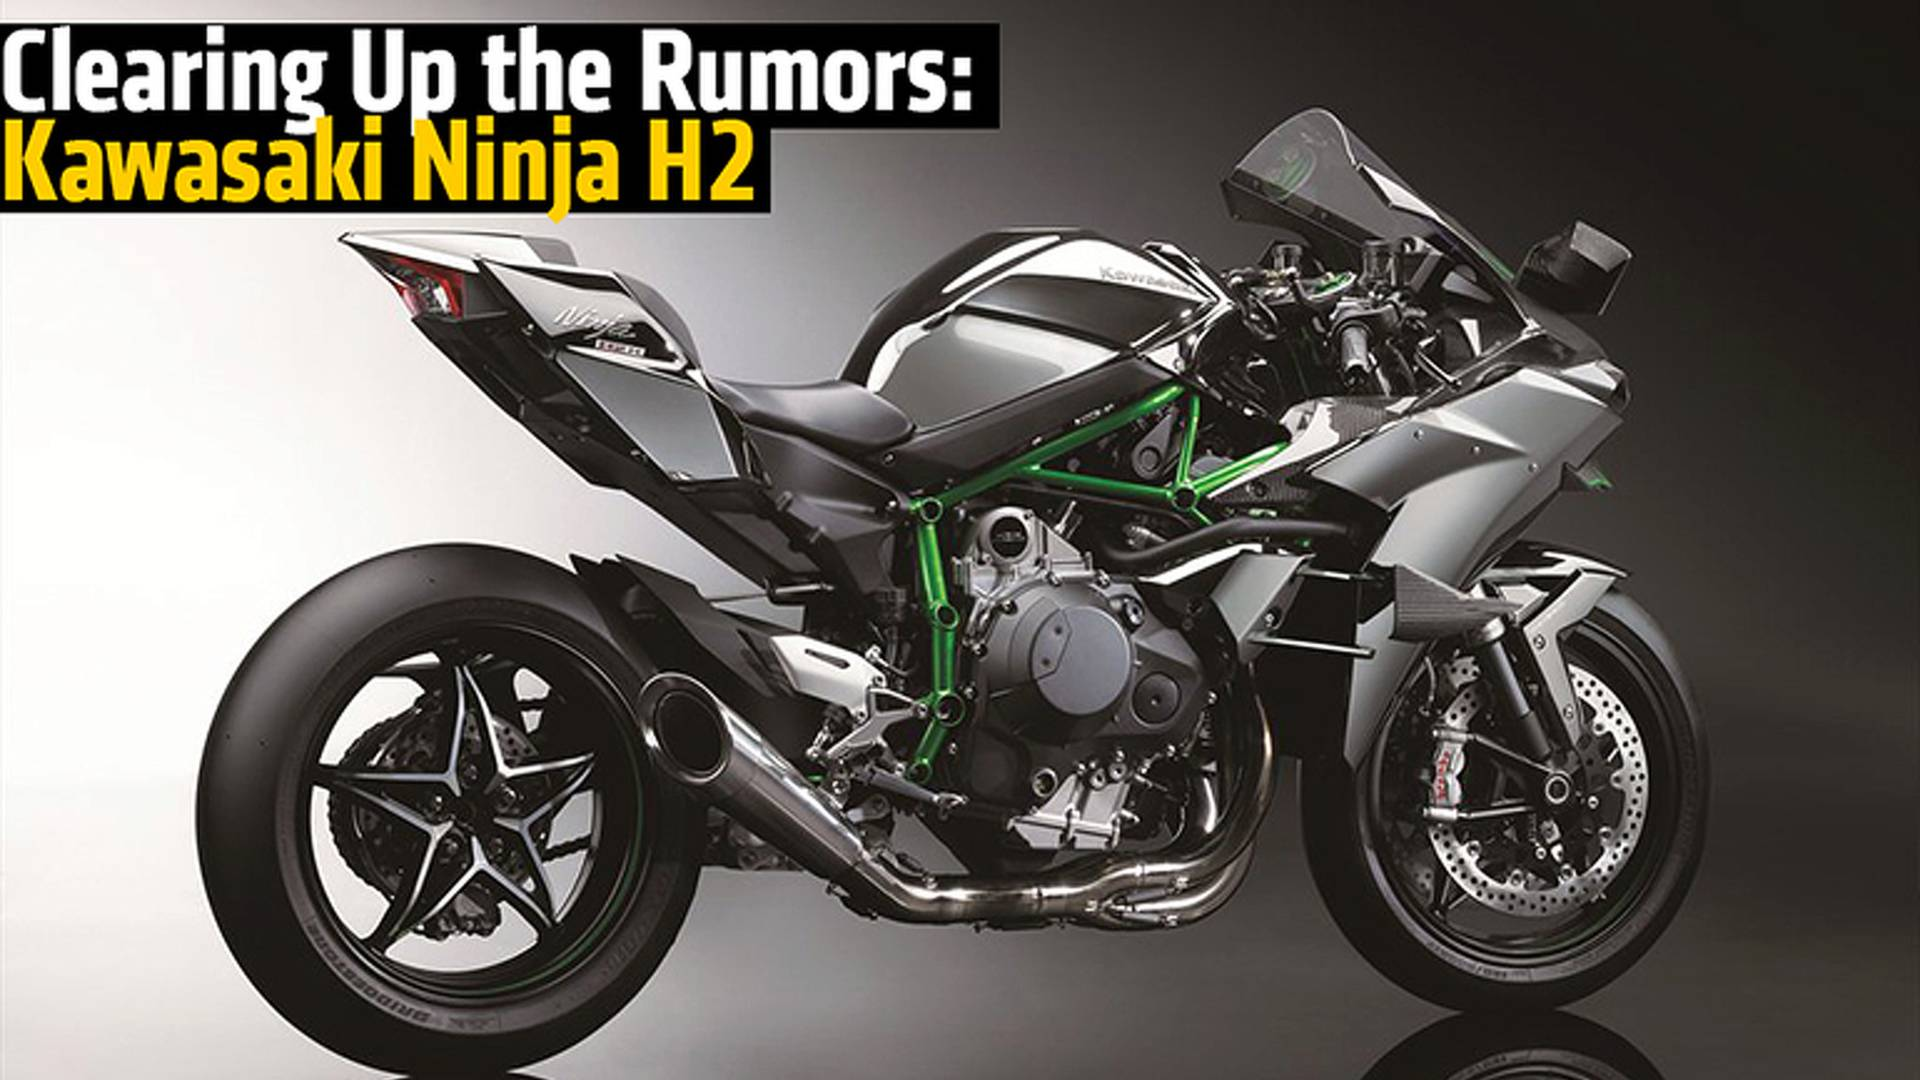 Clearing Up The Rumors Kawasaki Ninja H2